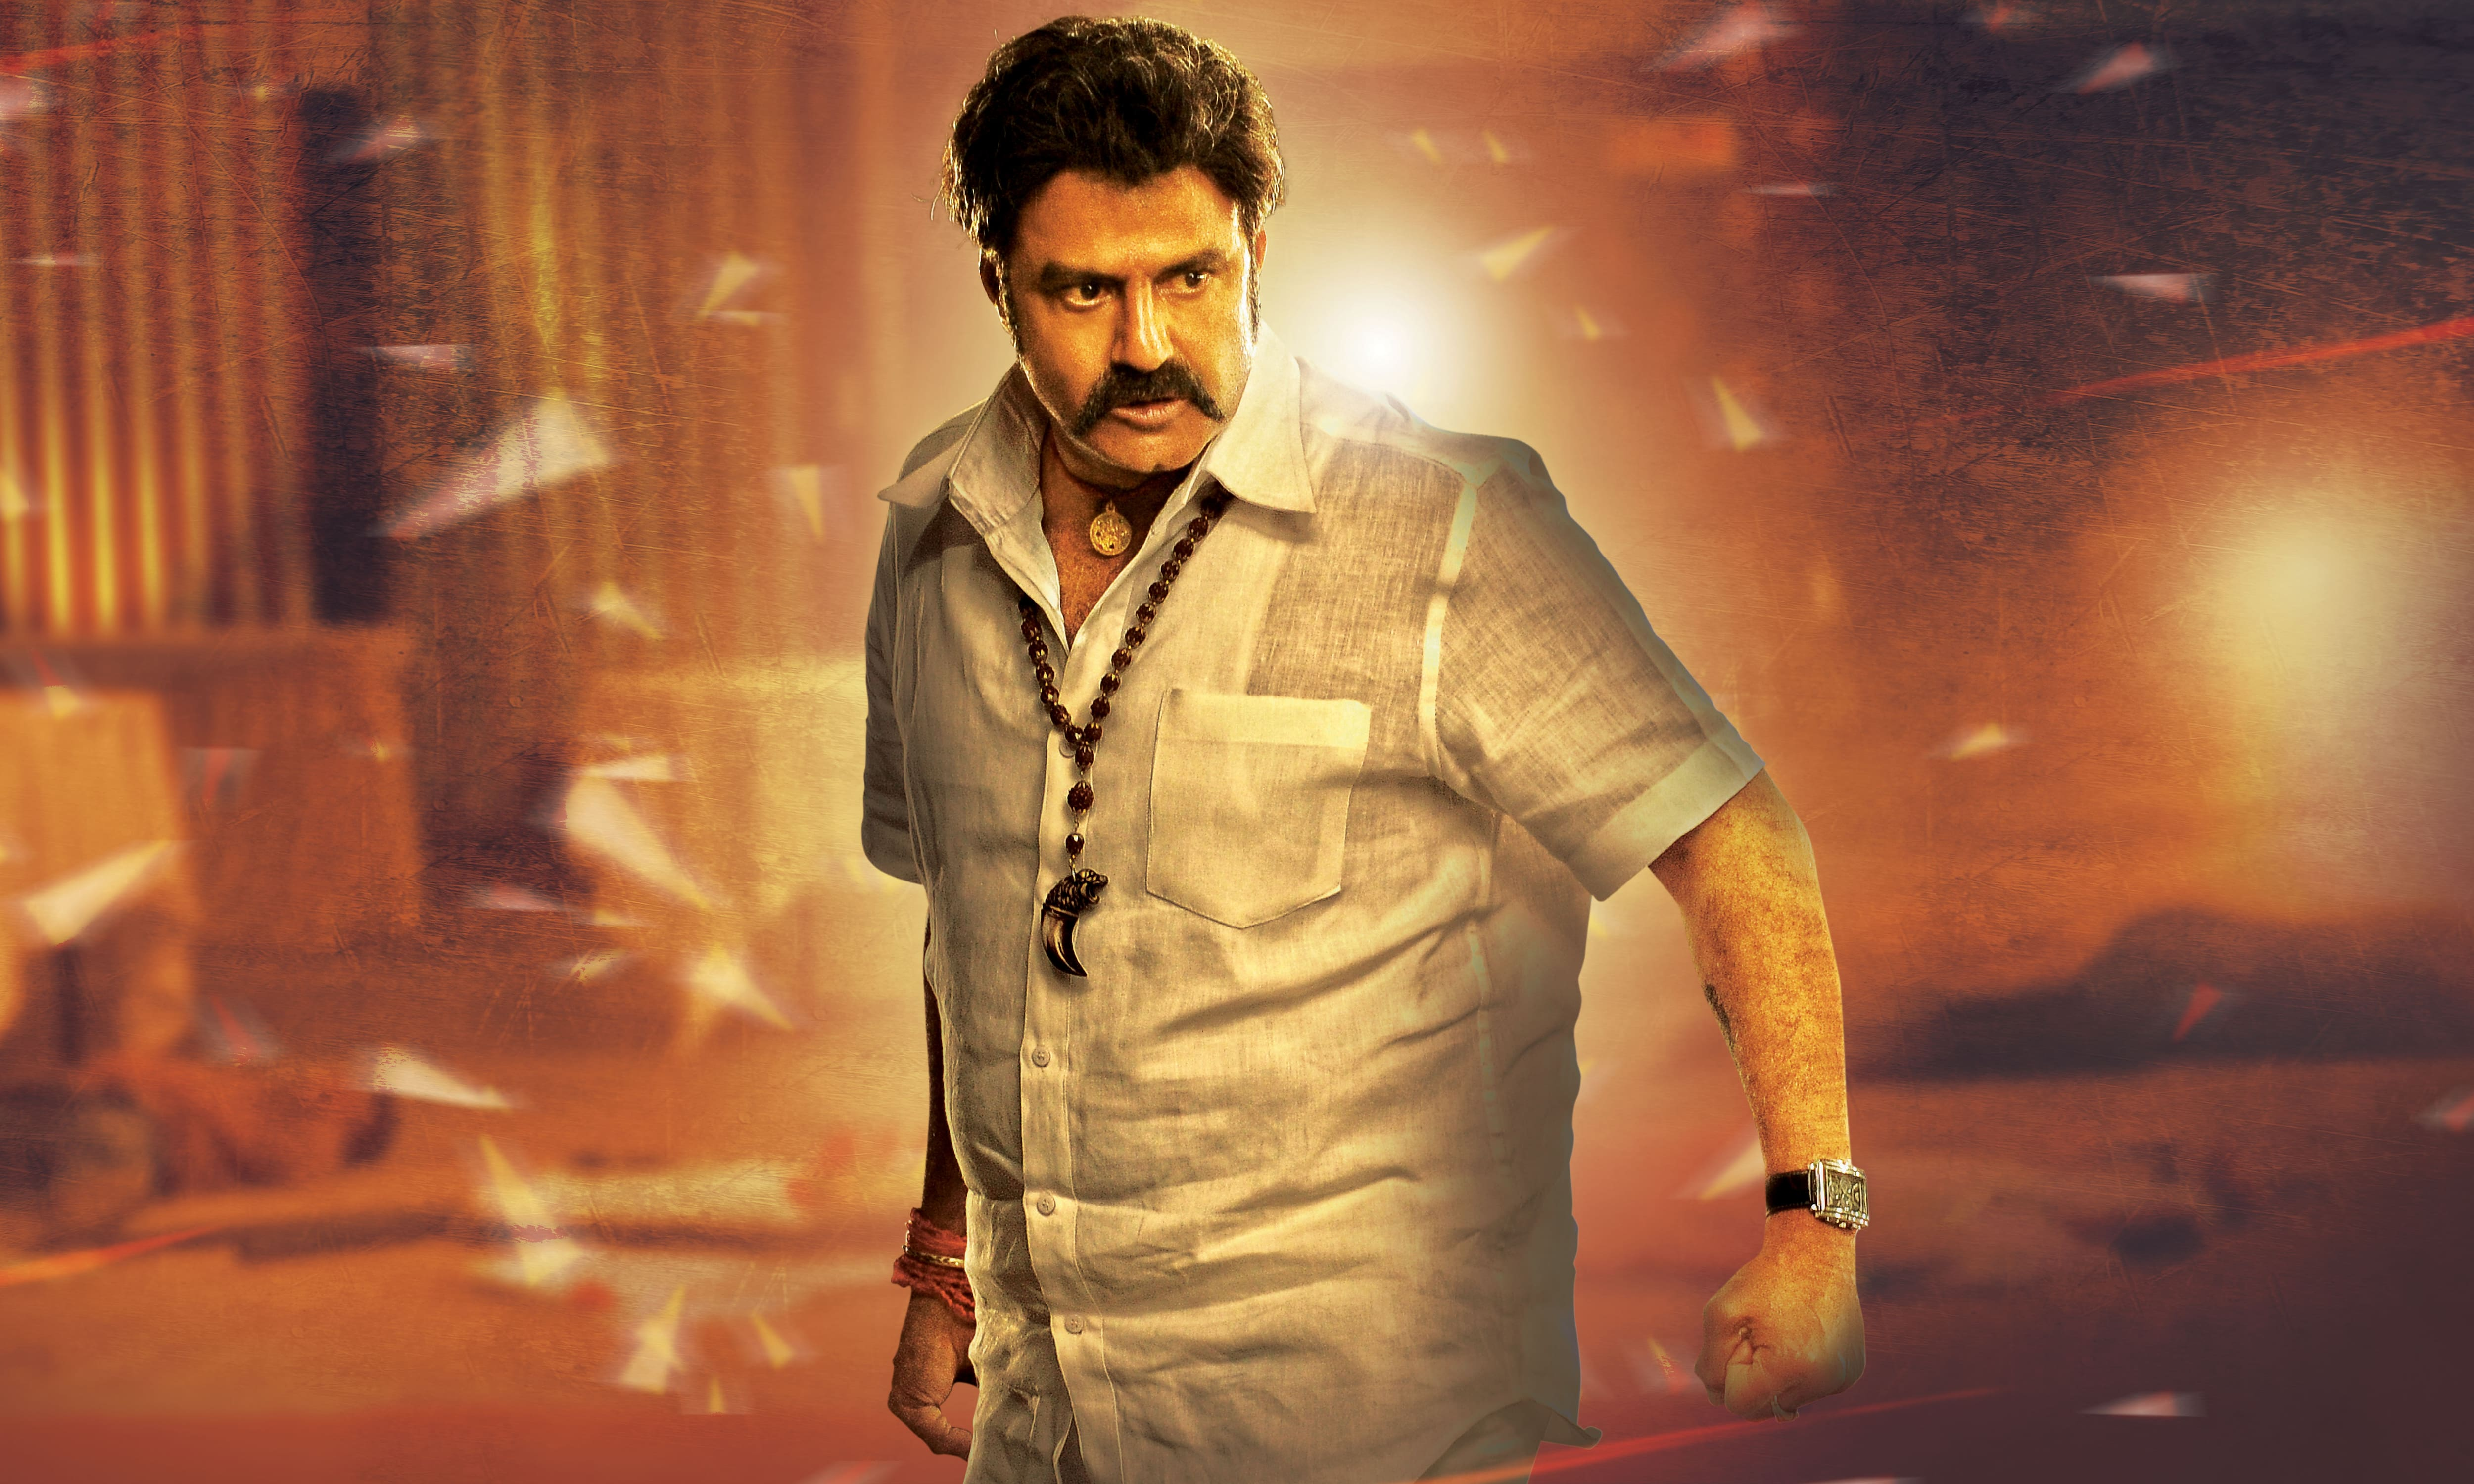 Video Showing Balakrishna Slapping His Assistant Has Gone Viral!